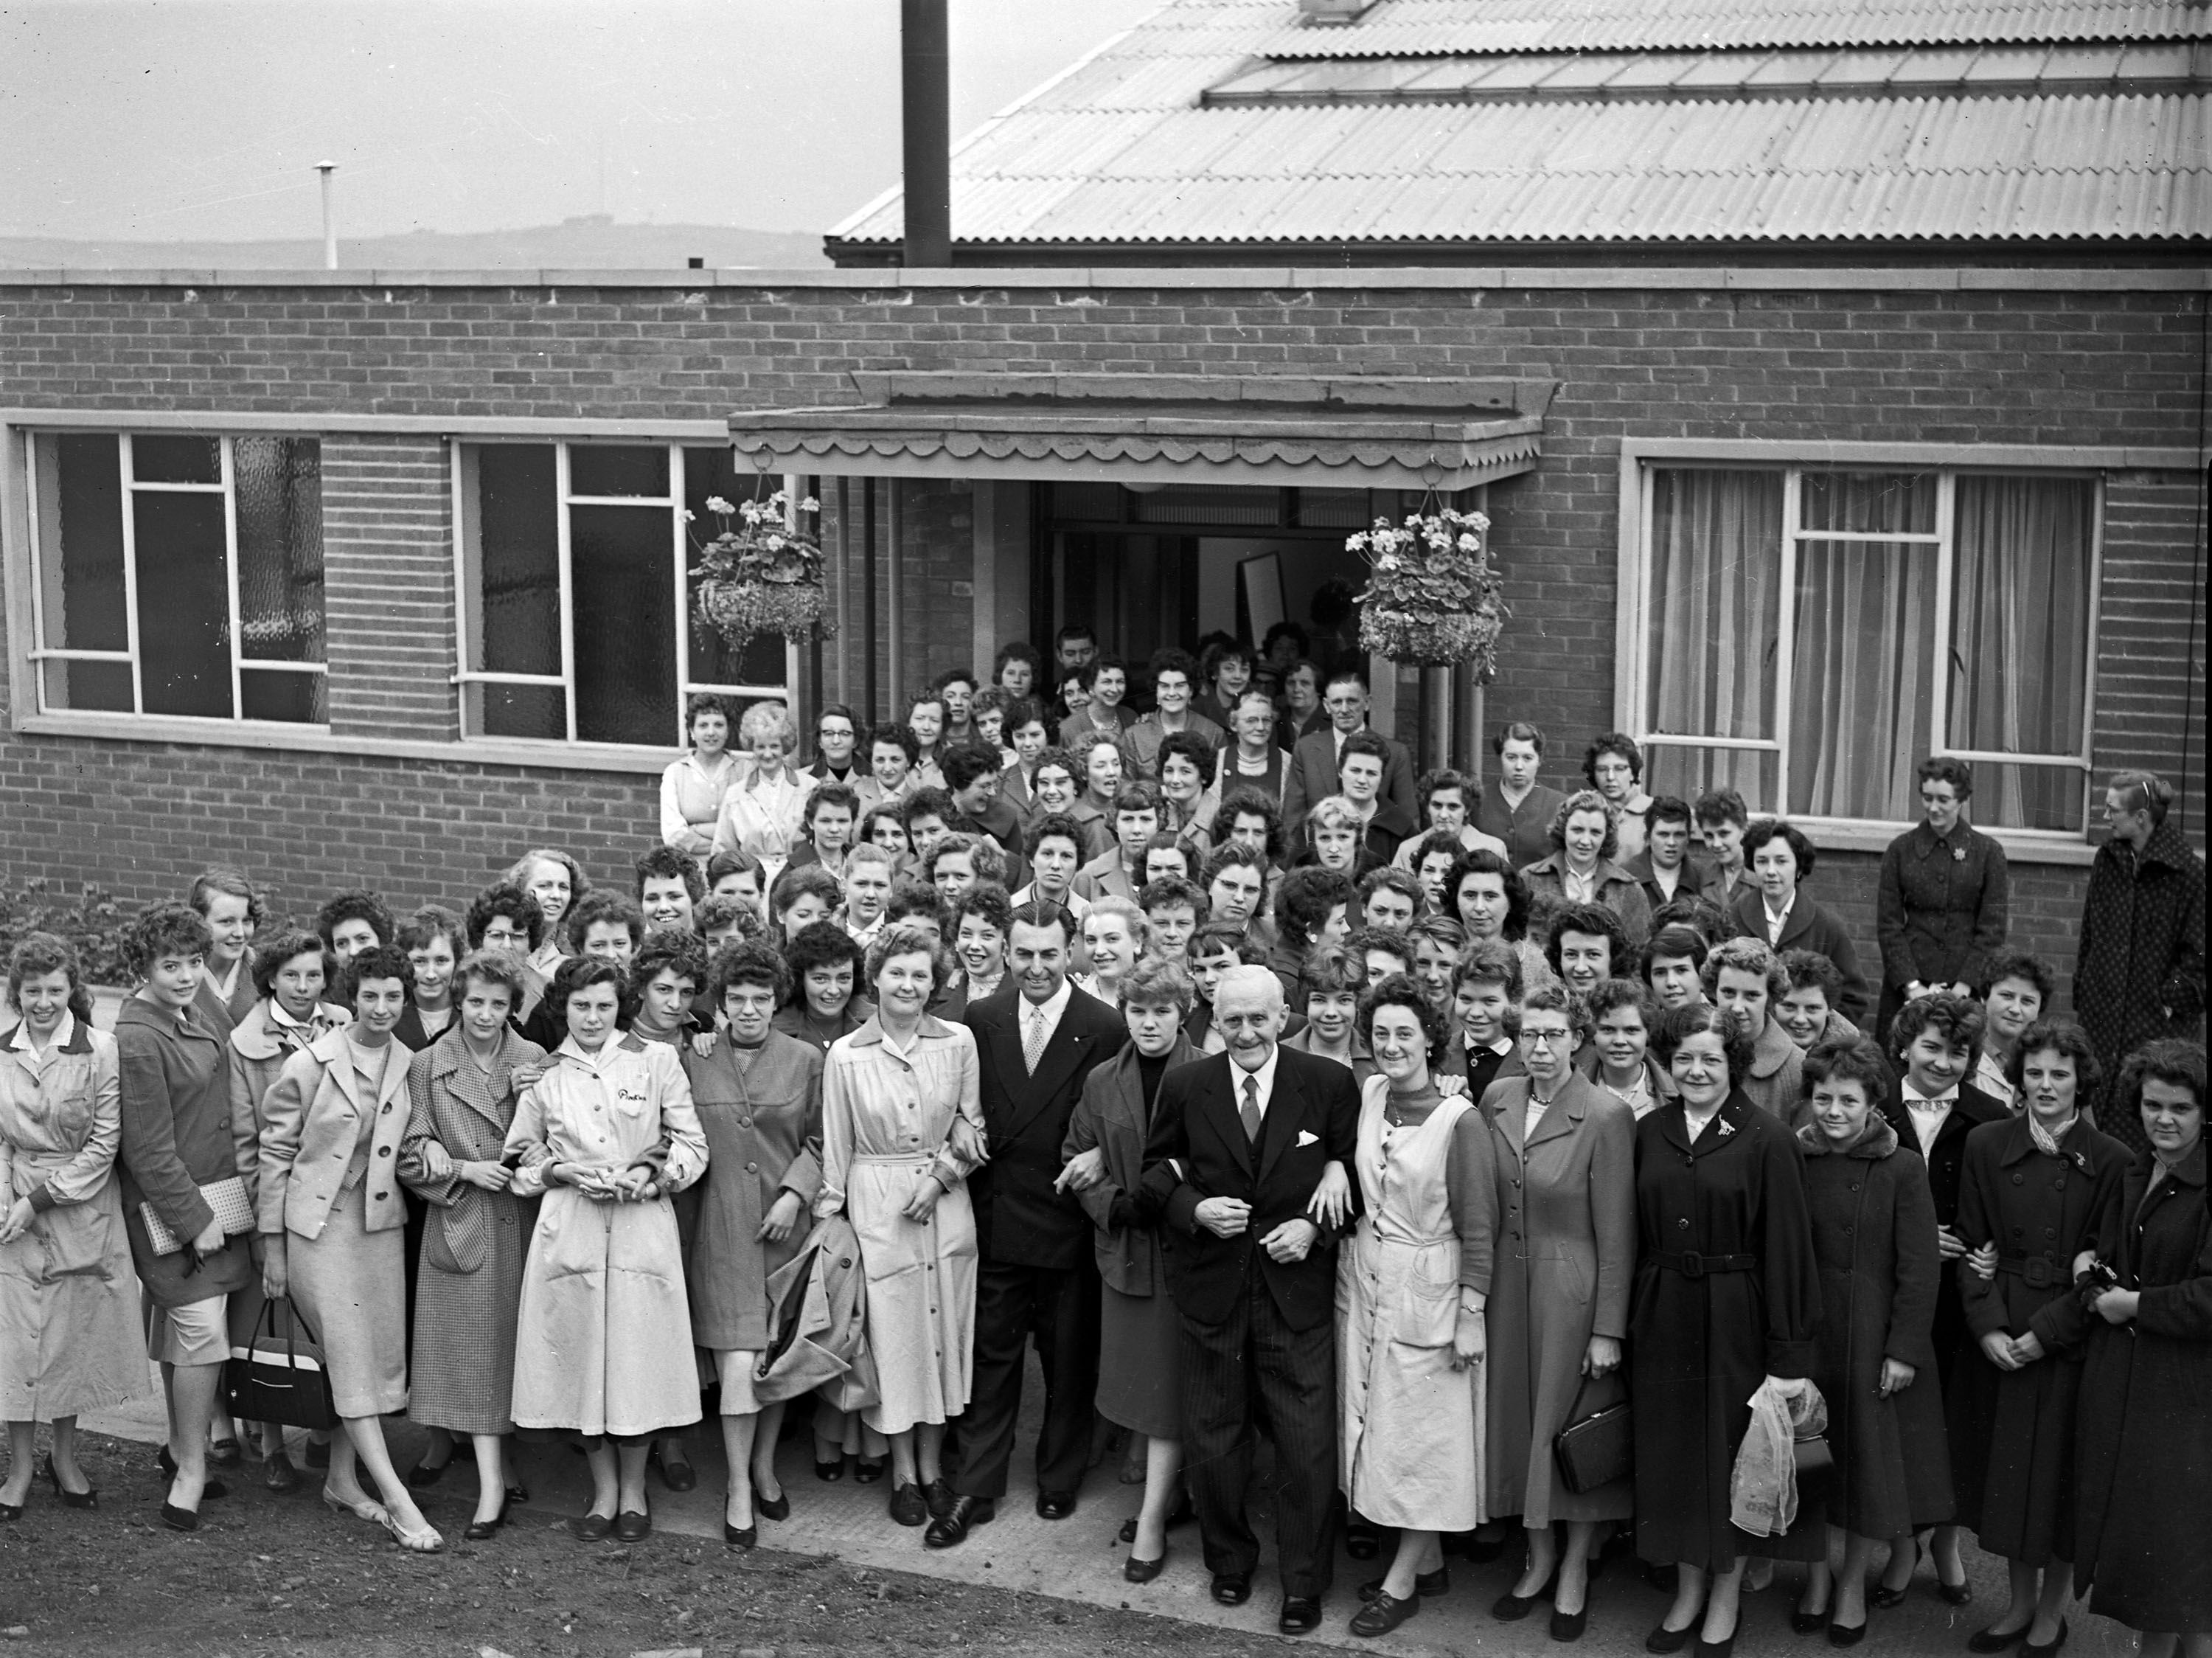 15. 1959 June 18th opening of Glove Factory stanley.